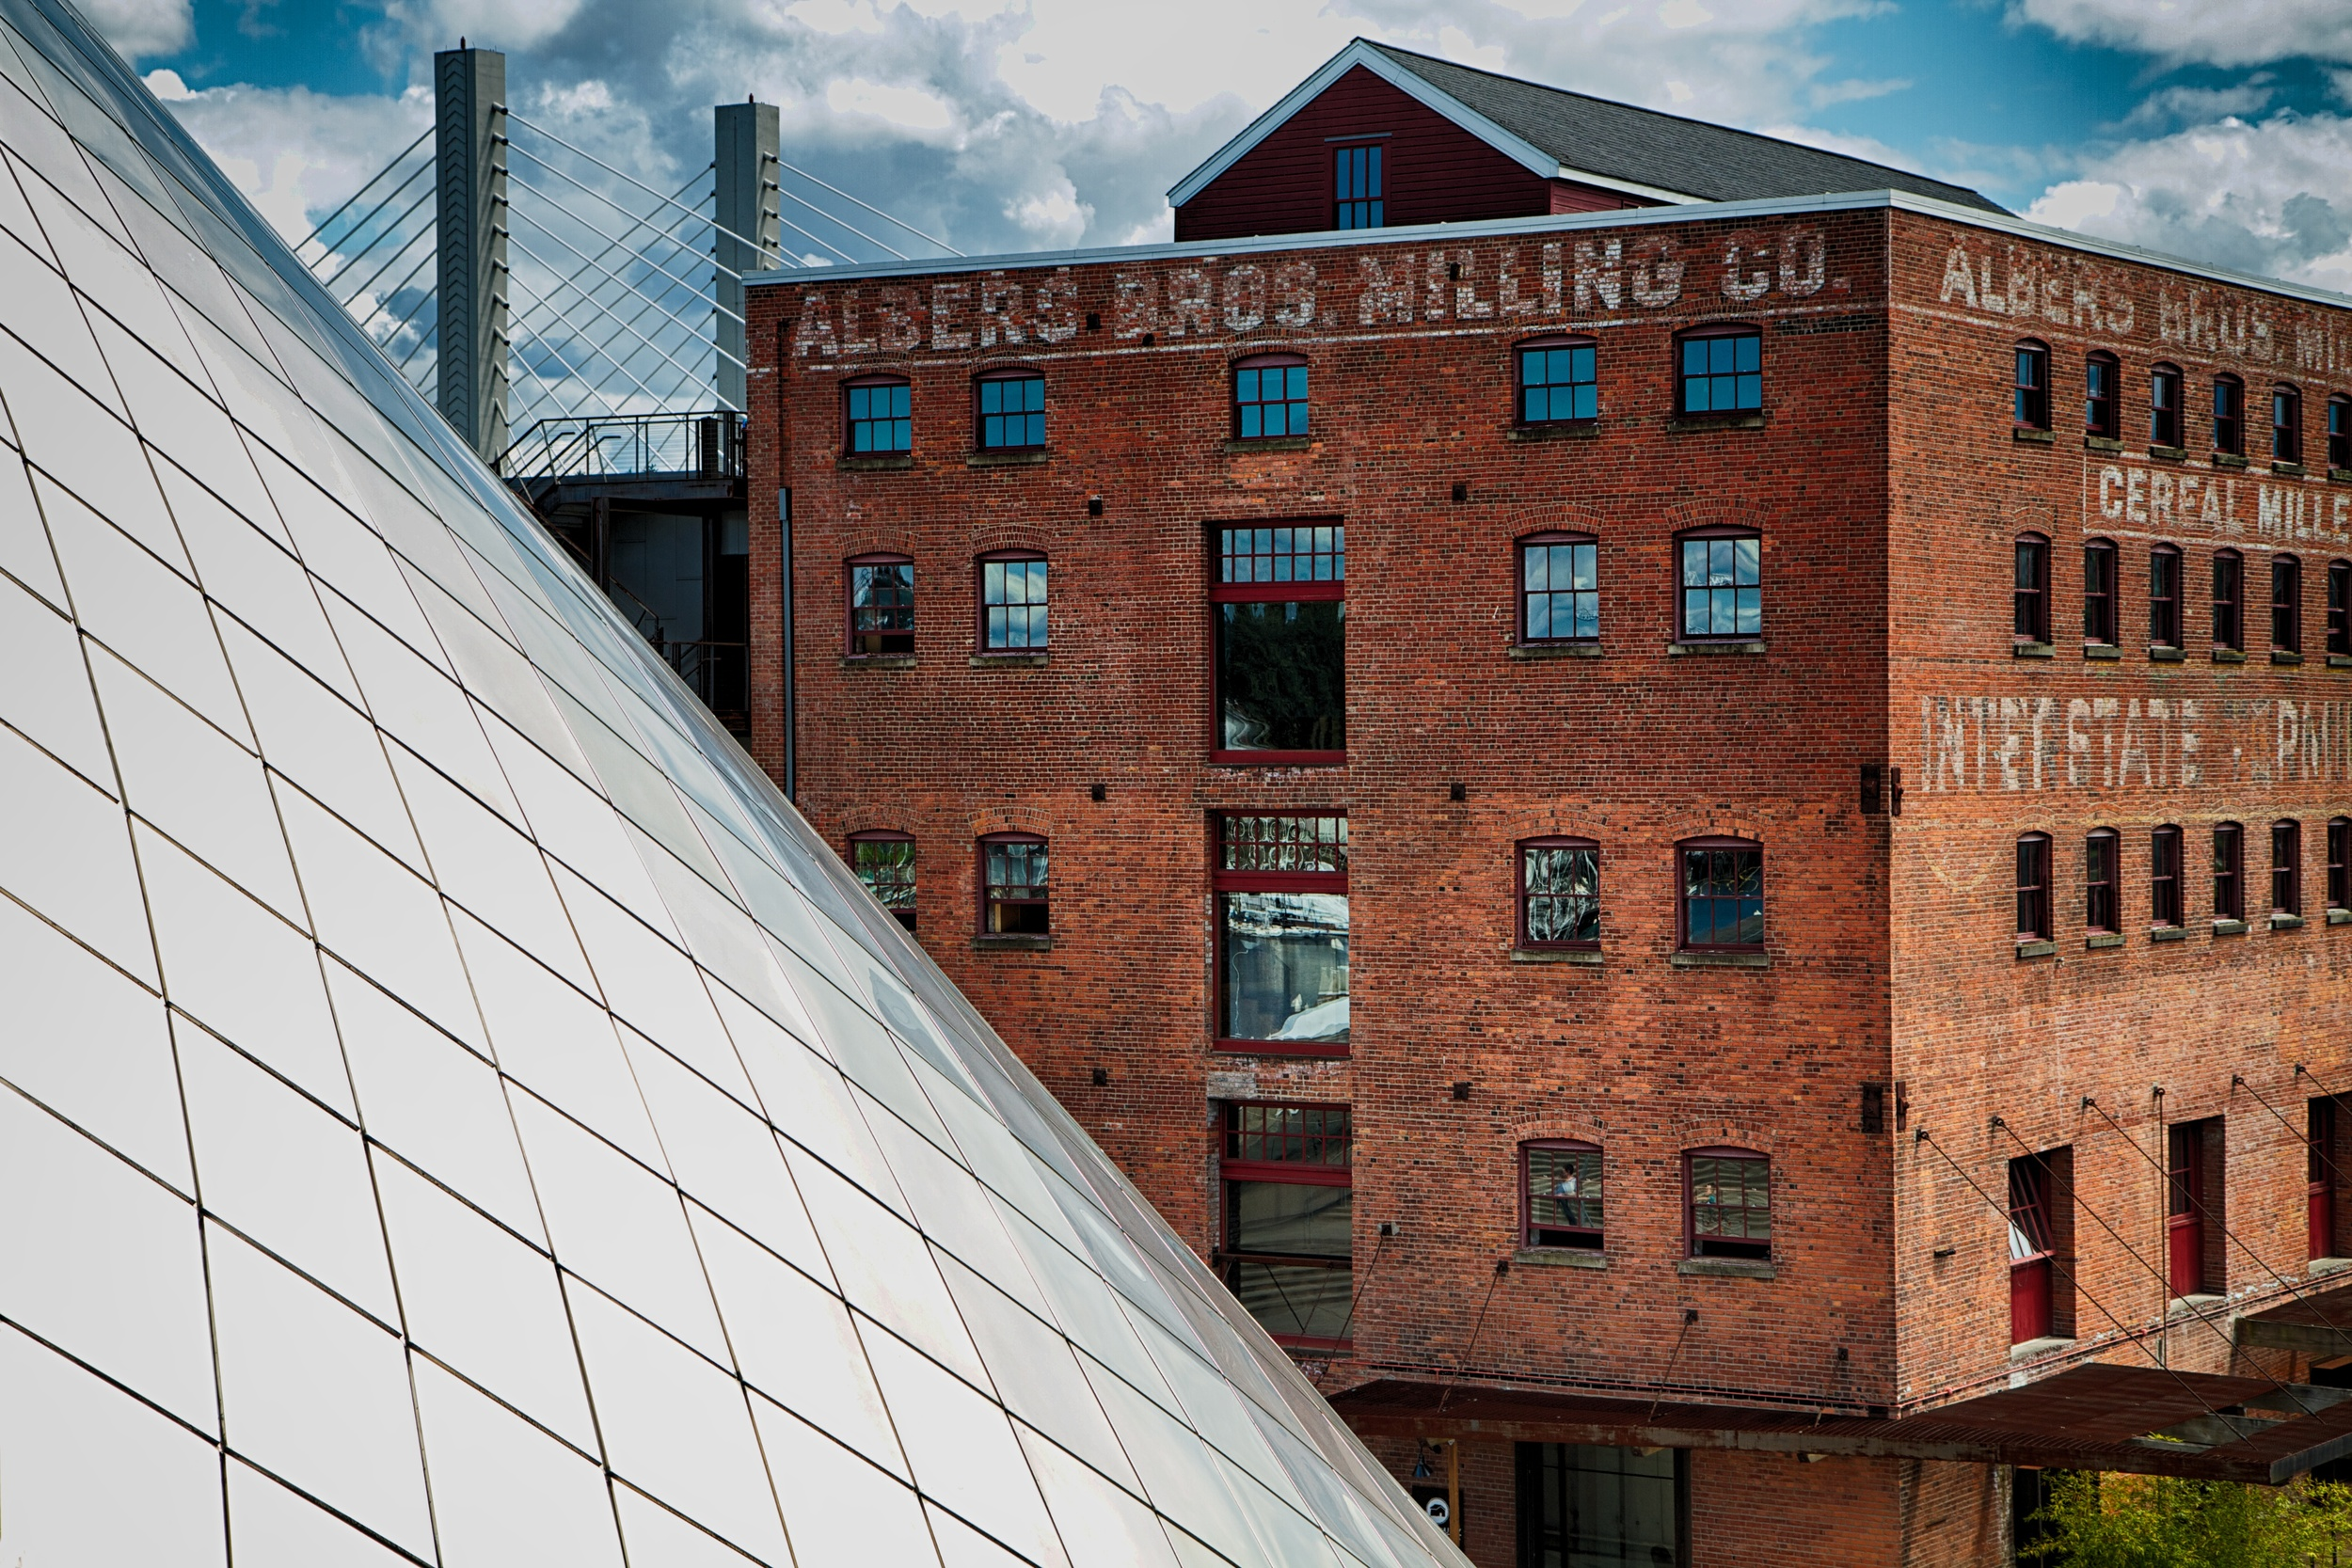 The conical shape of The Glass Museum in Tacoma stands in contrast to the old brick warehouse.  Canon EOS 7D EF-S 17-55mm f/2.8 at 42mm f/4.5 1/400 ISO 100